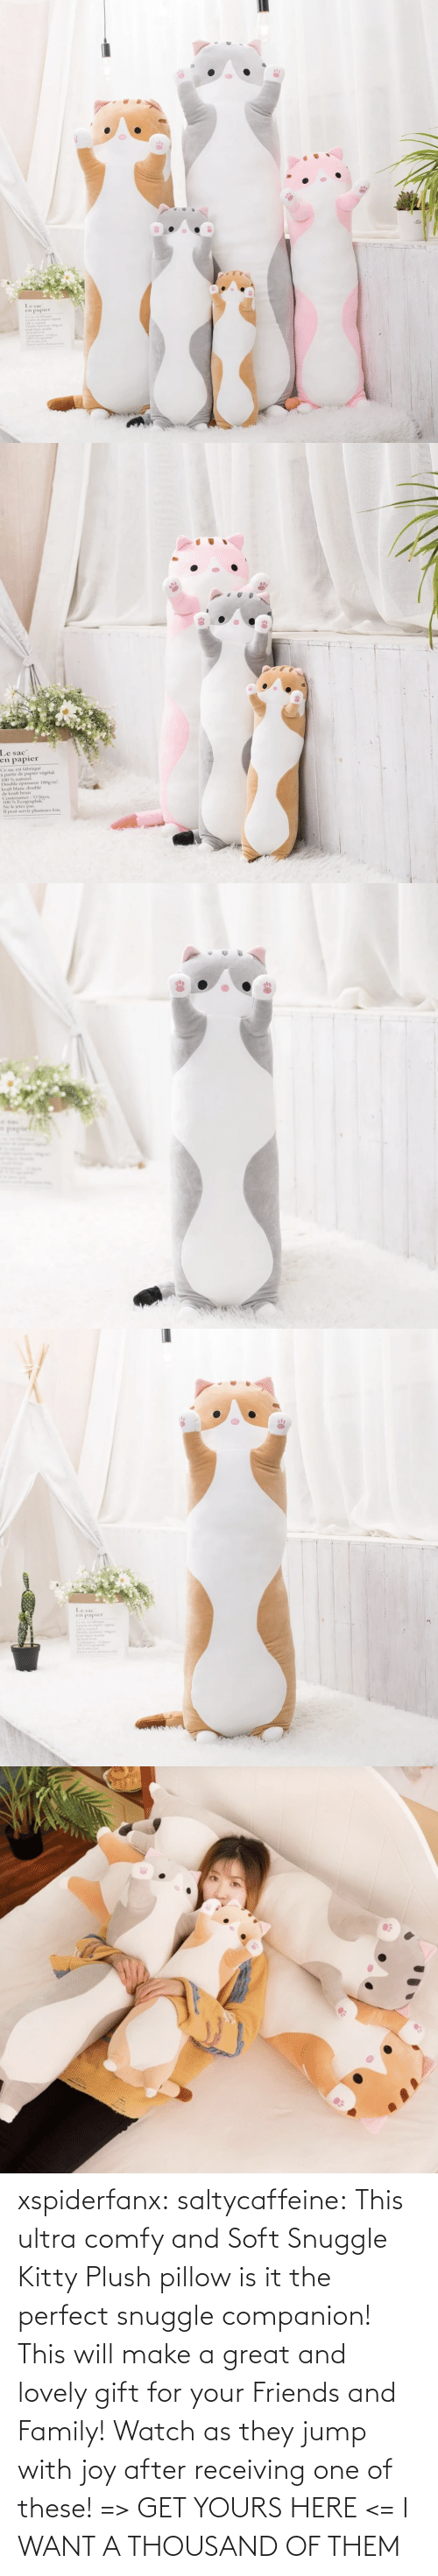 I Want: xspiderfanx:  saltycaffeine: This ultra comfy and Soft Snuggle Kitty Plush pillow is it the perfect snuggle companion! This will make a great and lovely gift for your Friends and Family! Watch as they jump with joy after receiving one of these! => GET YOURS HERE <=    I WANT A THOUSAND OF THEM